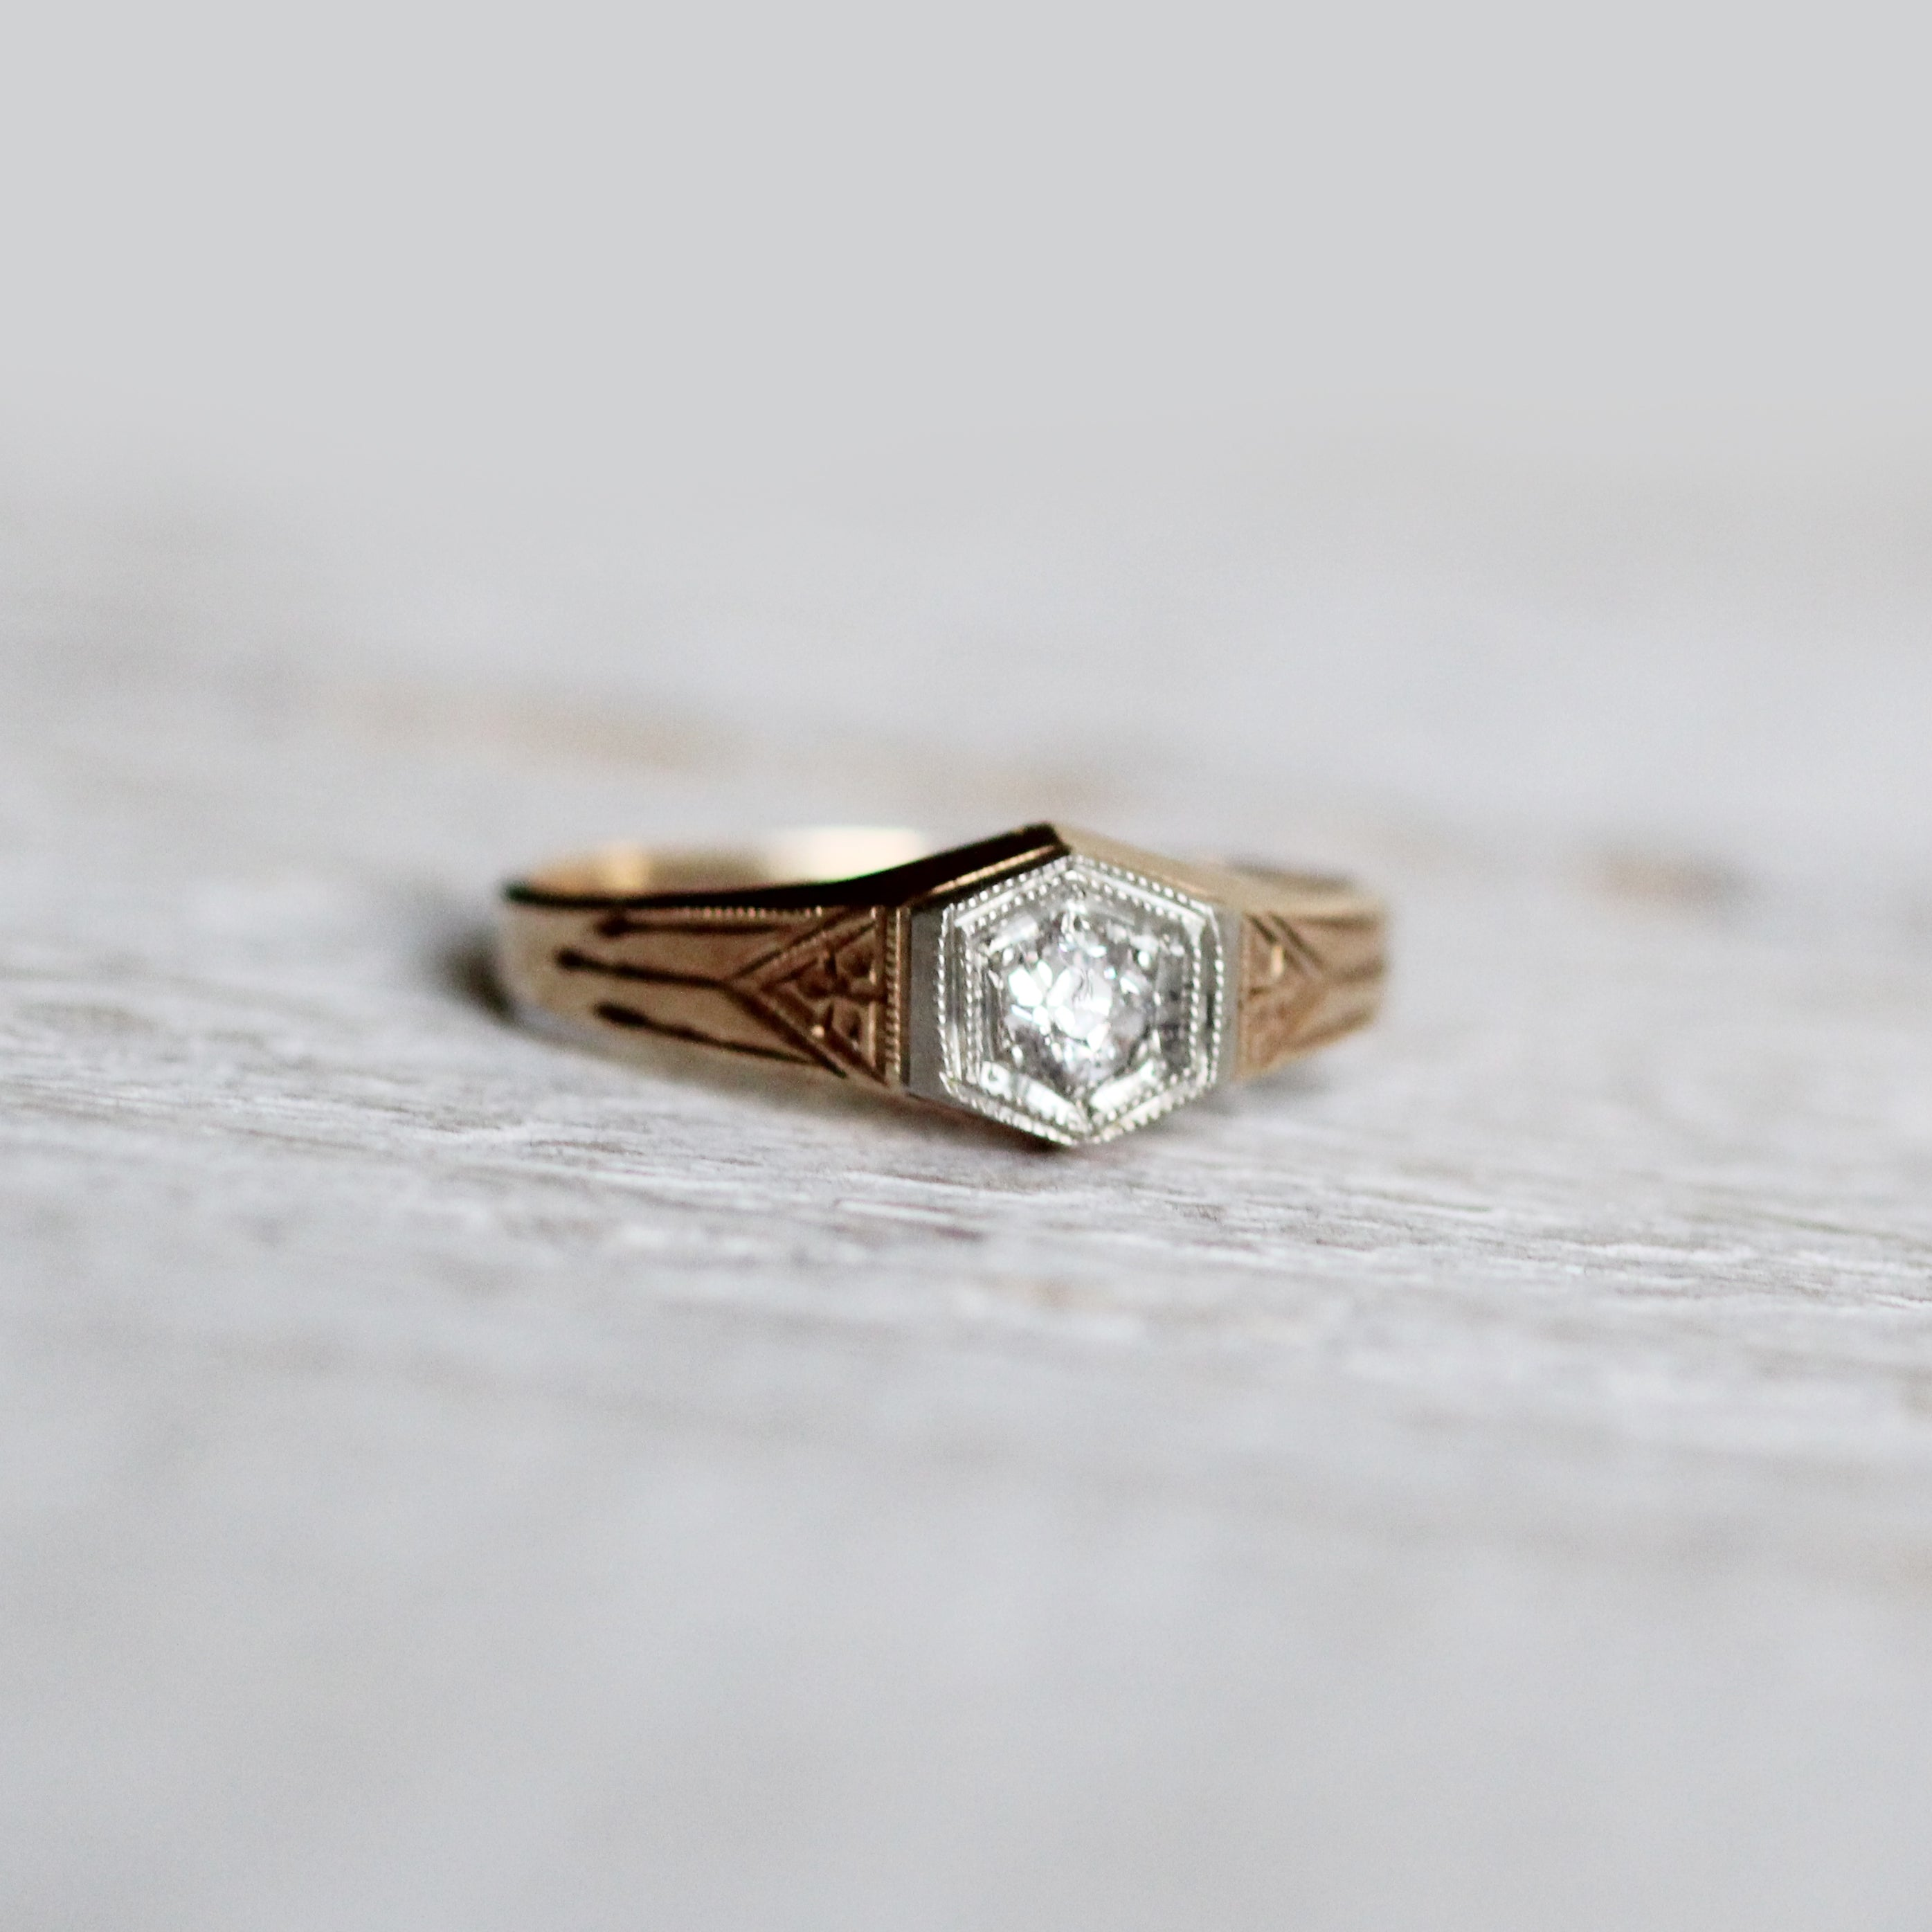 Quinten - Antique Hexagon Old Mine Cut Diamond Ring with Etching Engraving Triangles and Geometric Style - Ready to size and ship